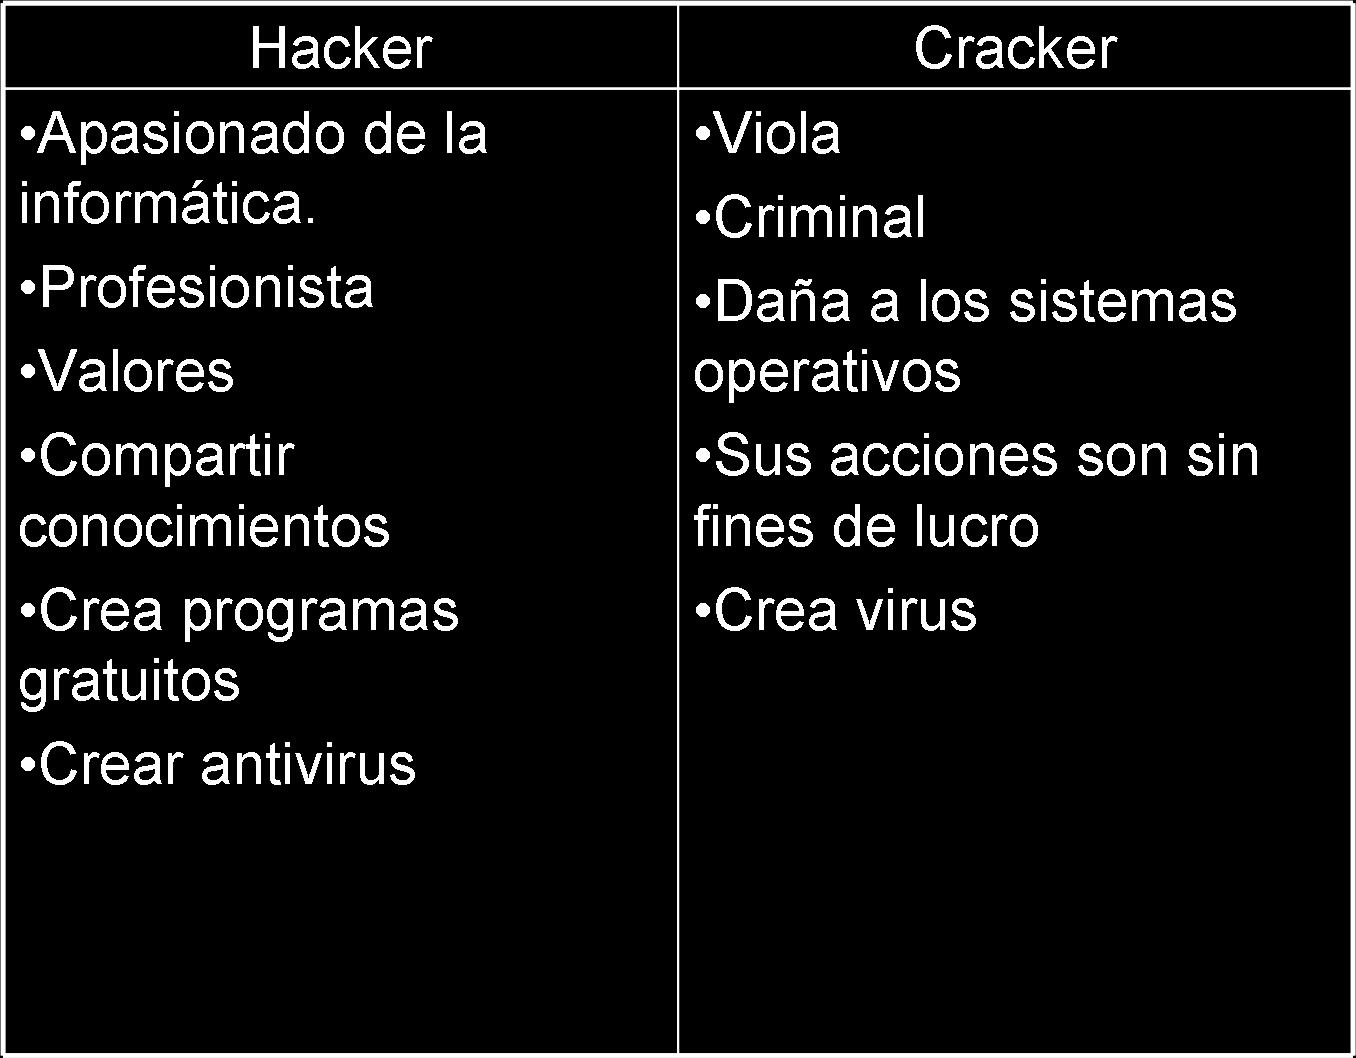 Hackers vs. Crackers: What's the difference?